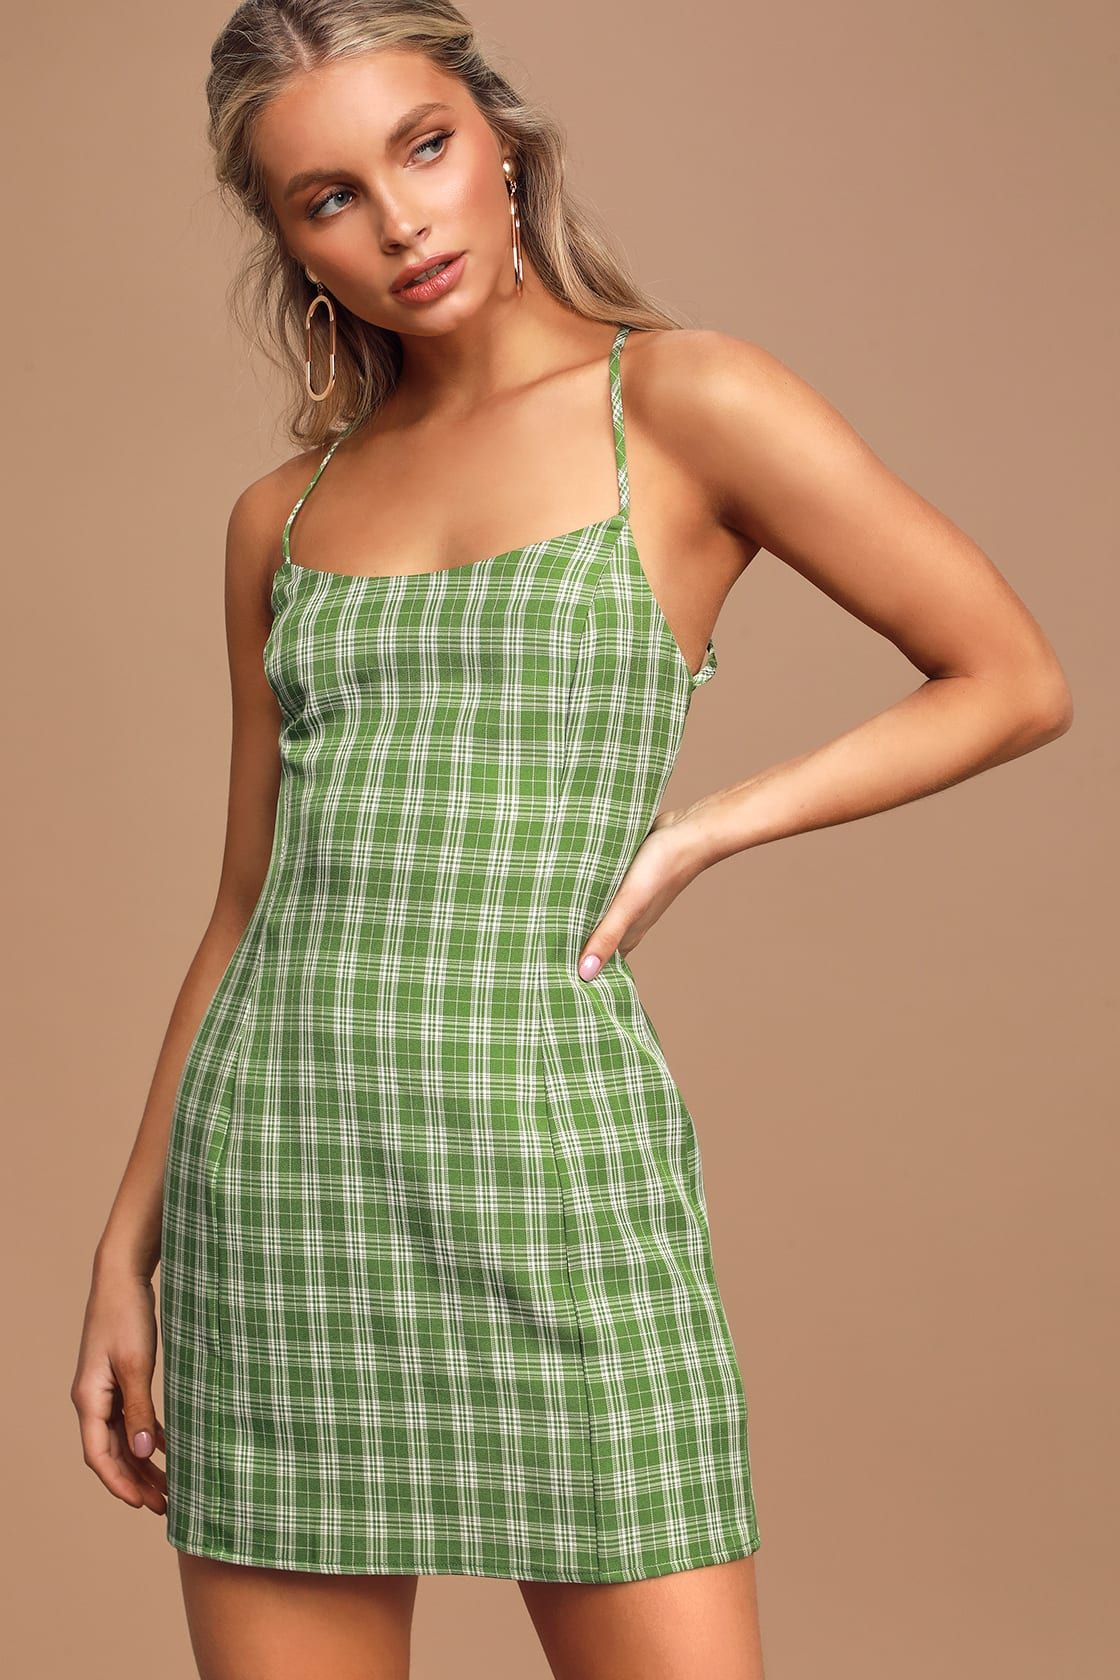 Plaid To Be Here Green Plaid Lace Up Backless Mini Dress In 2020 Mini Dress Backless Mini Dress Fashion Inspo Outfits [ 1680 x 1120 Pixel ]